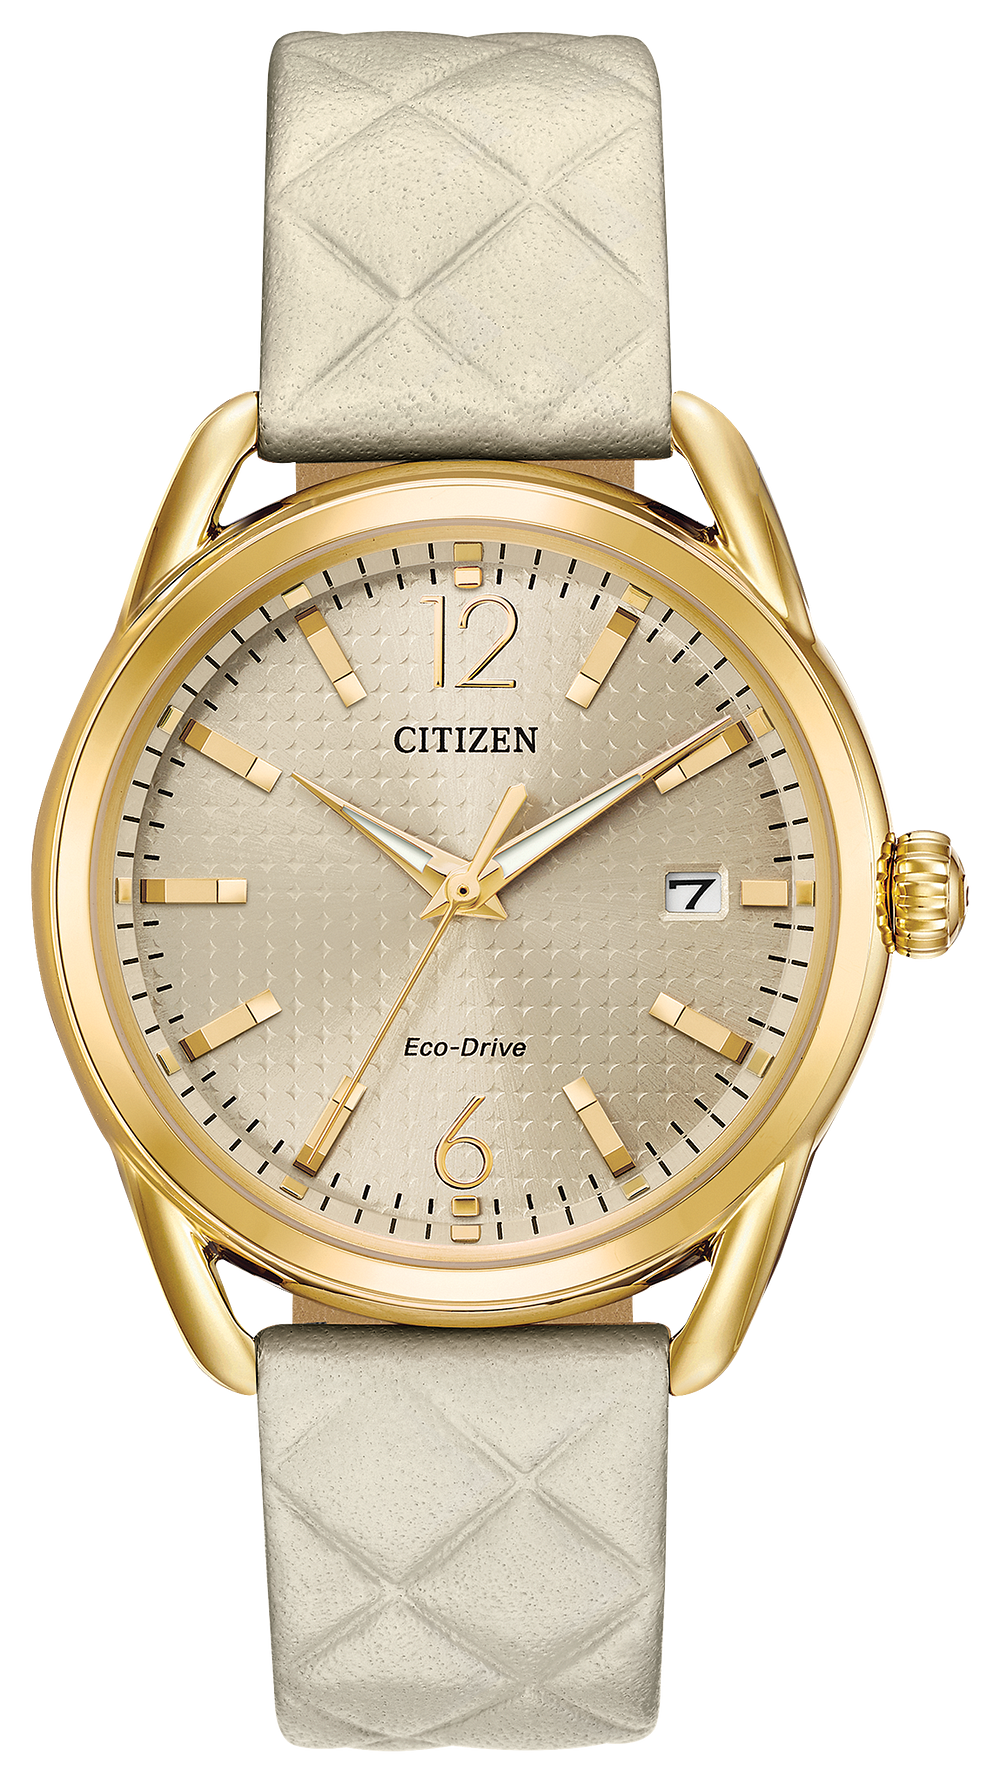 Citizen Watches- Long Term Relationship collection